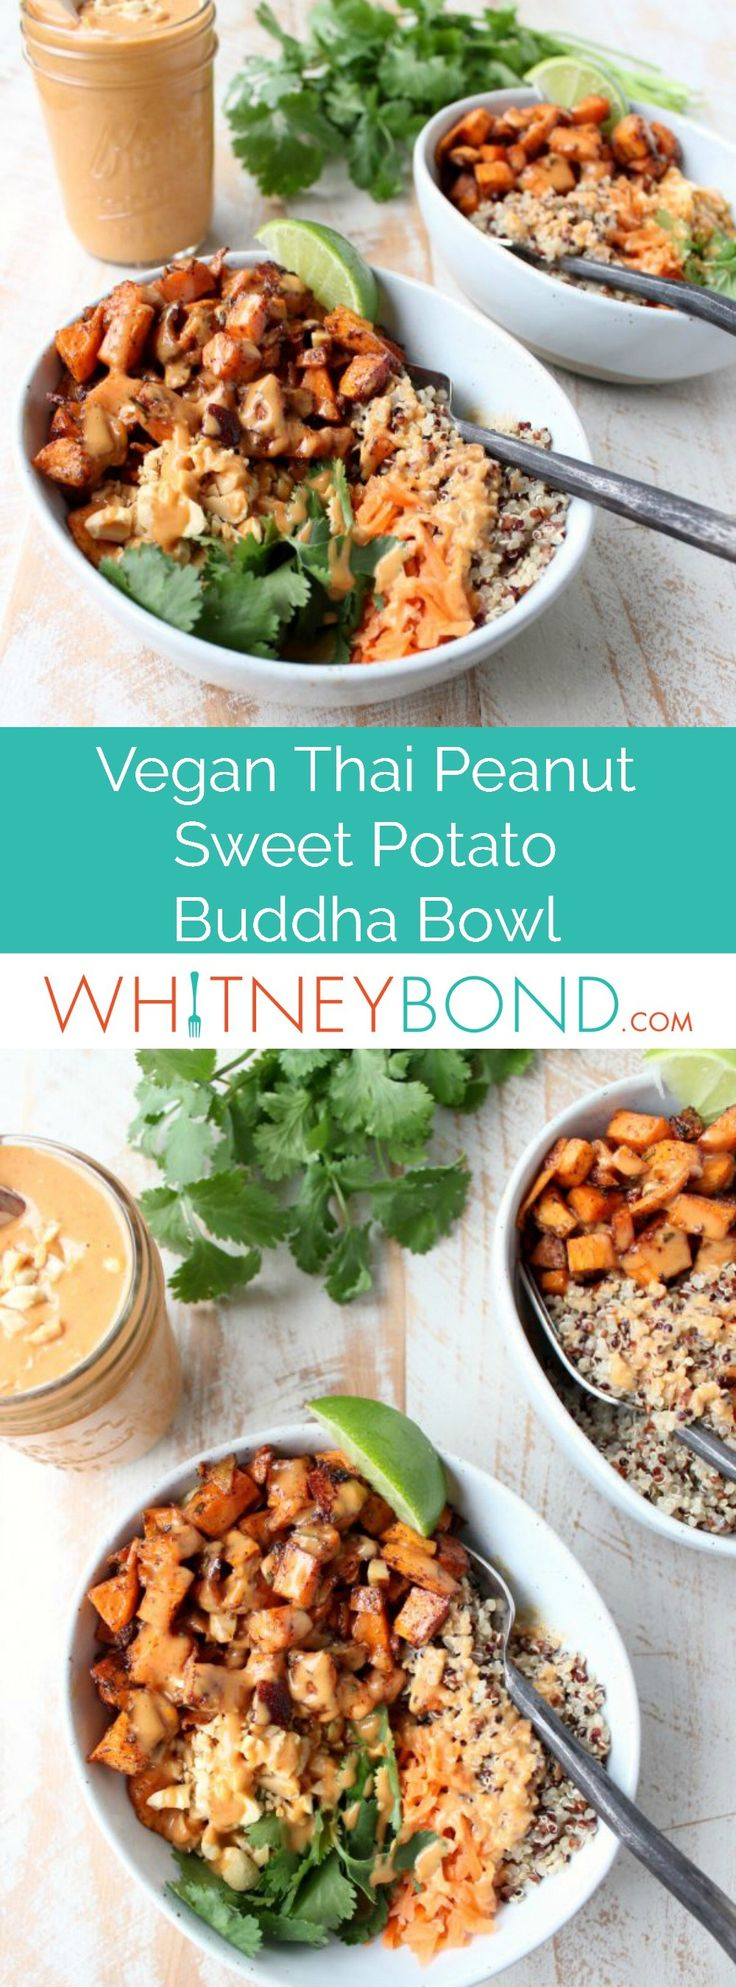 Roasted sweet potatoes and quinoa are topped with delicious Thai peanut sauce in this healthy, gluten free & vegan buddha bowl recipe! #vegan #healthy #glutenfree #recipe #buddhabowl